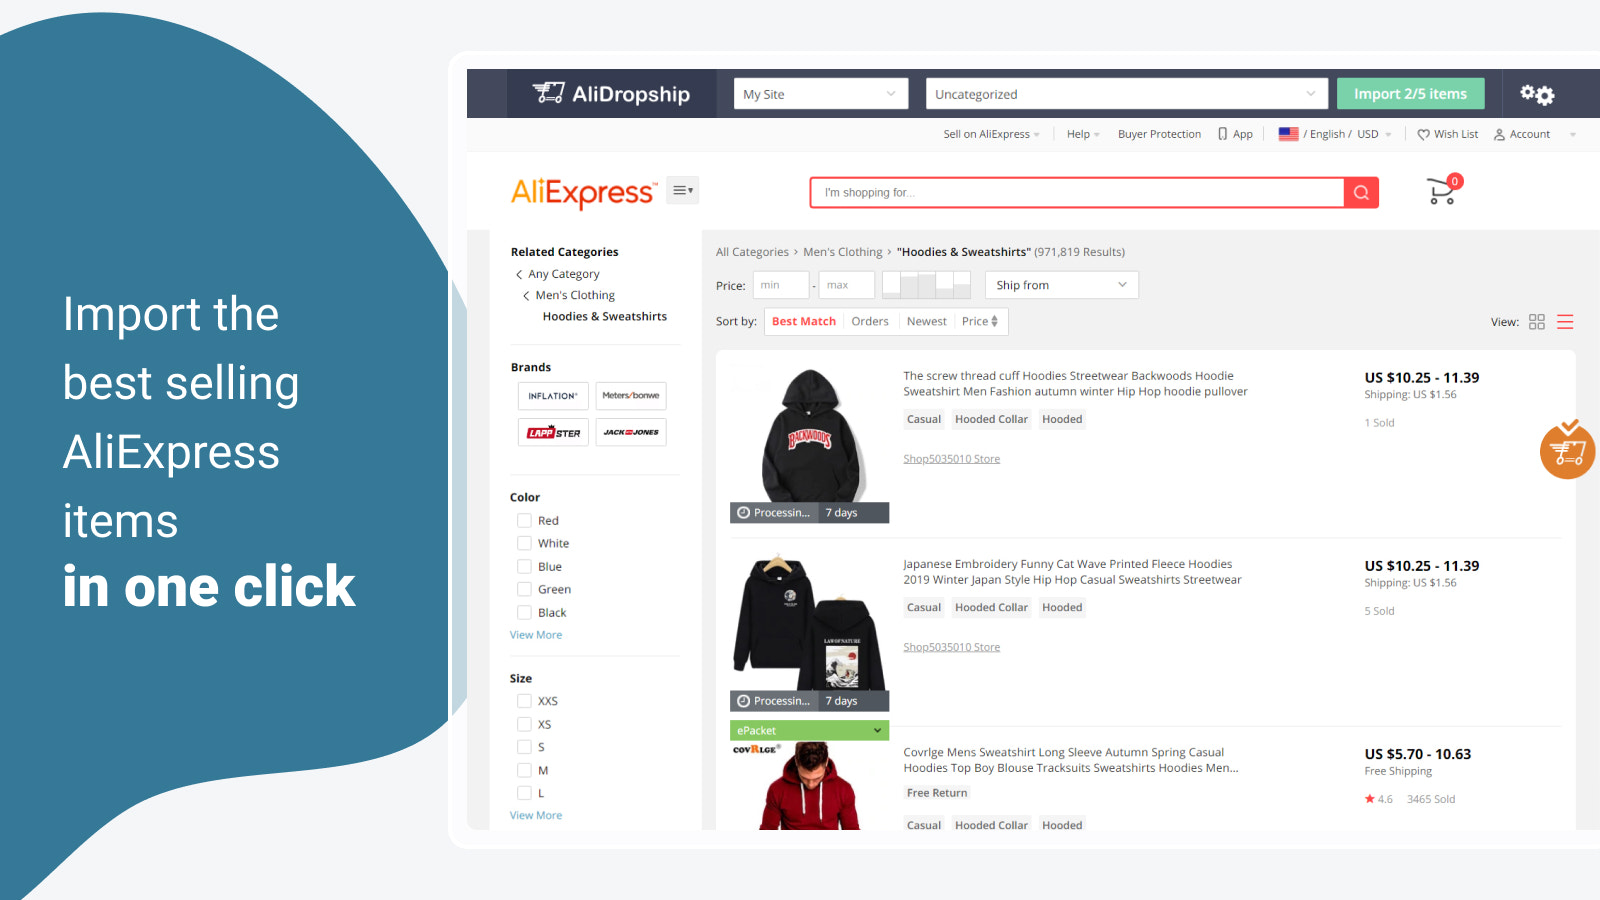 Import the best selling AliExpress items in one click